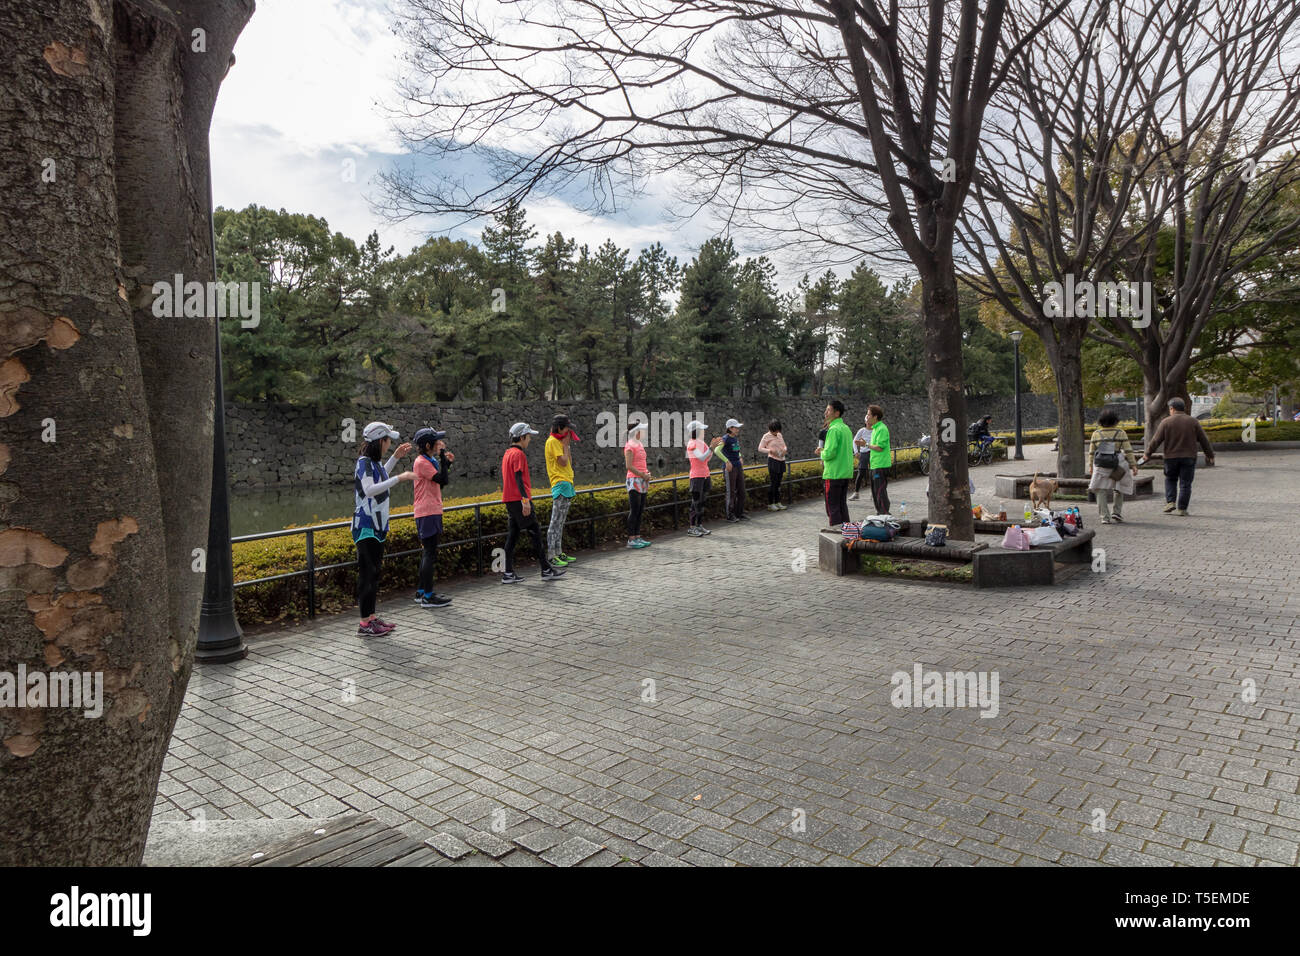 The area close to the Imperial Palace is the most popular jogging area among the locals. People love to jog in Tokyo! - Stock Image